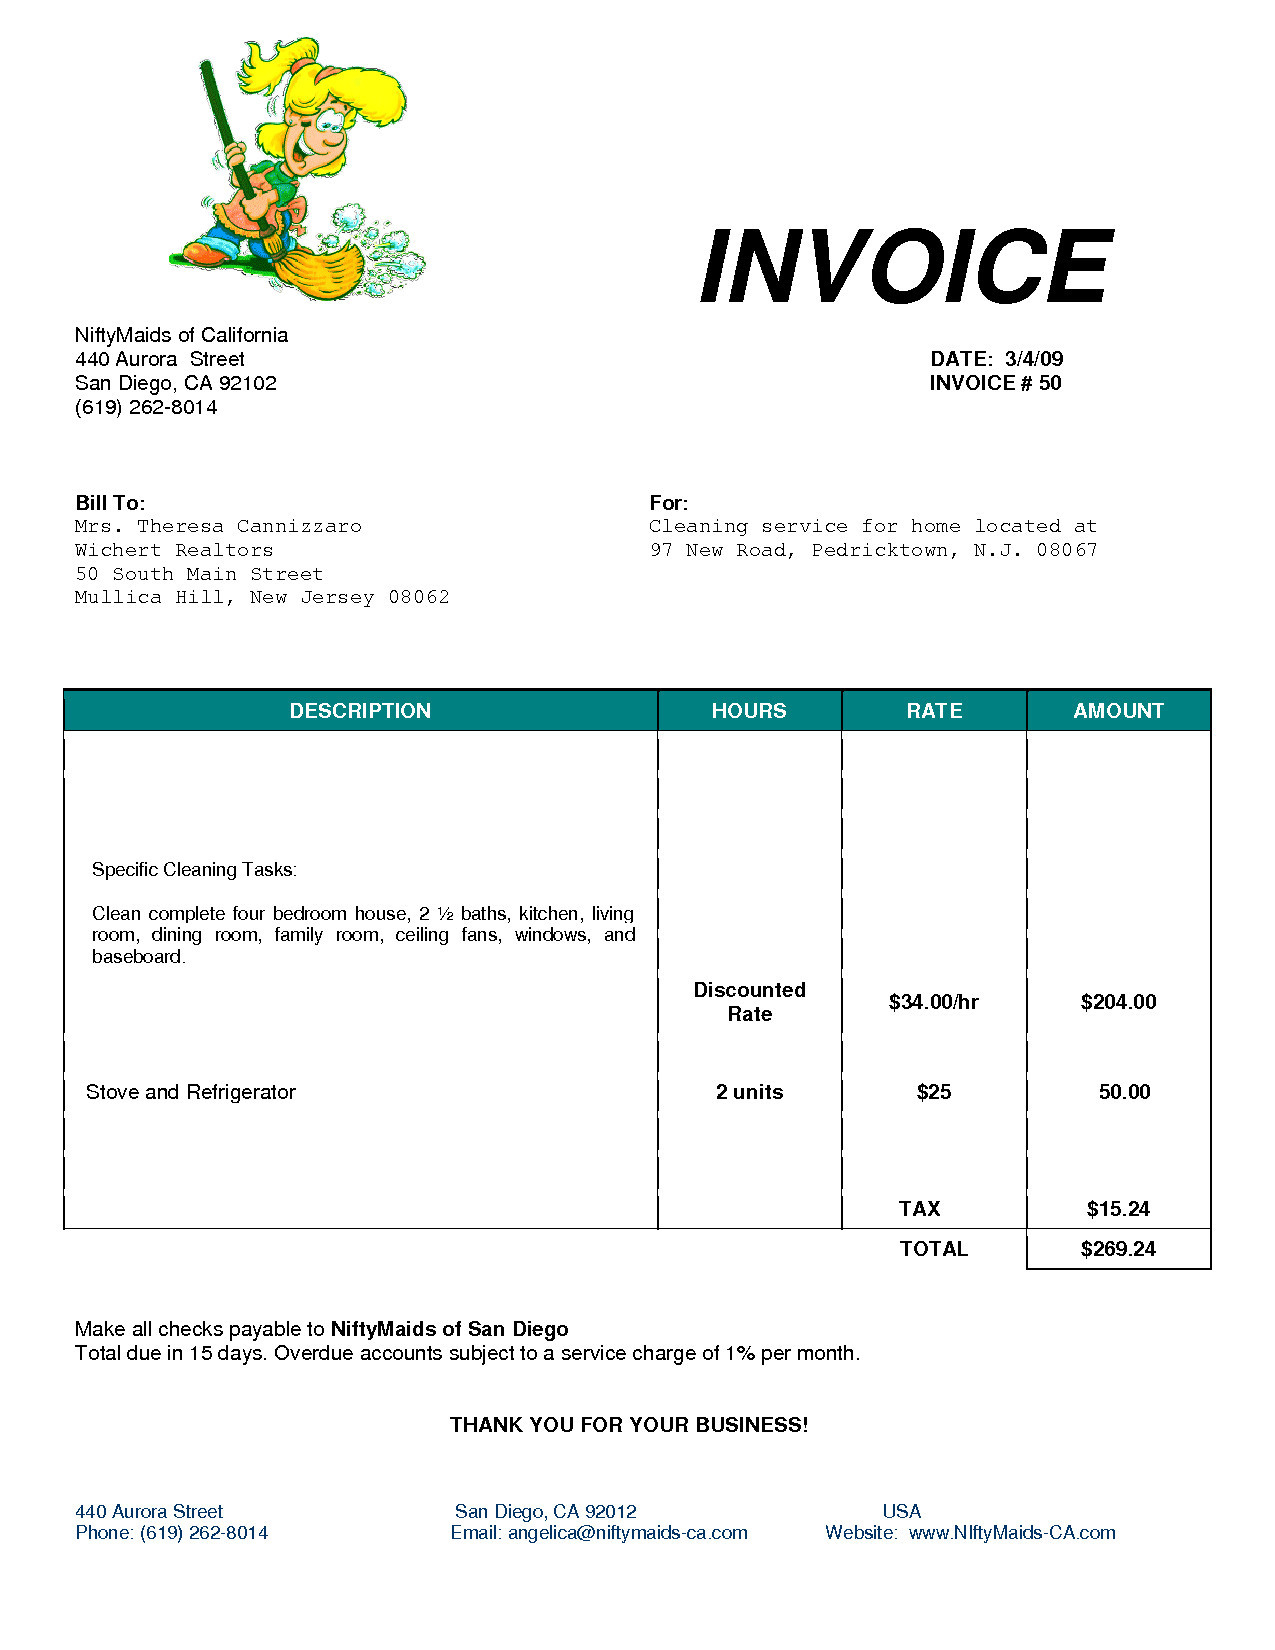 House Cleaning Invoice Example Invoice Template For Cleaning Within House Cleaning Service Invoice